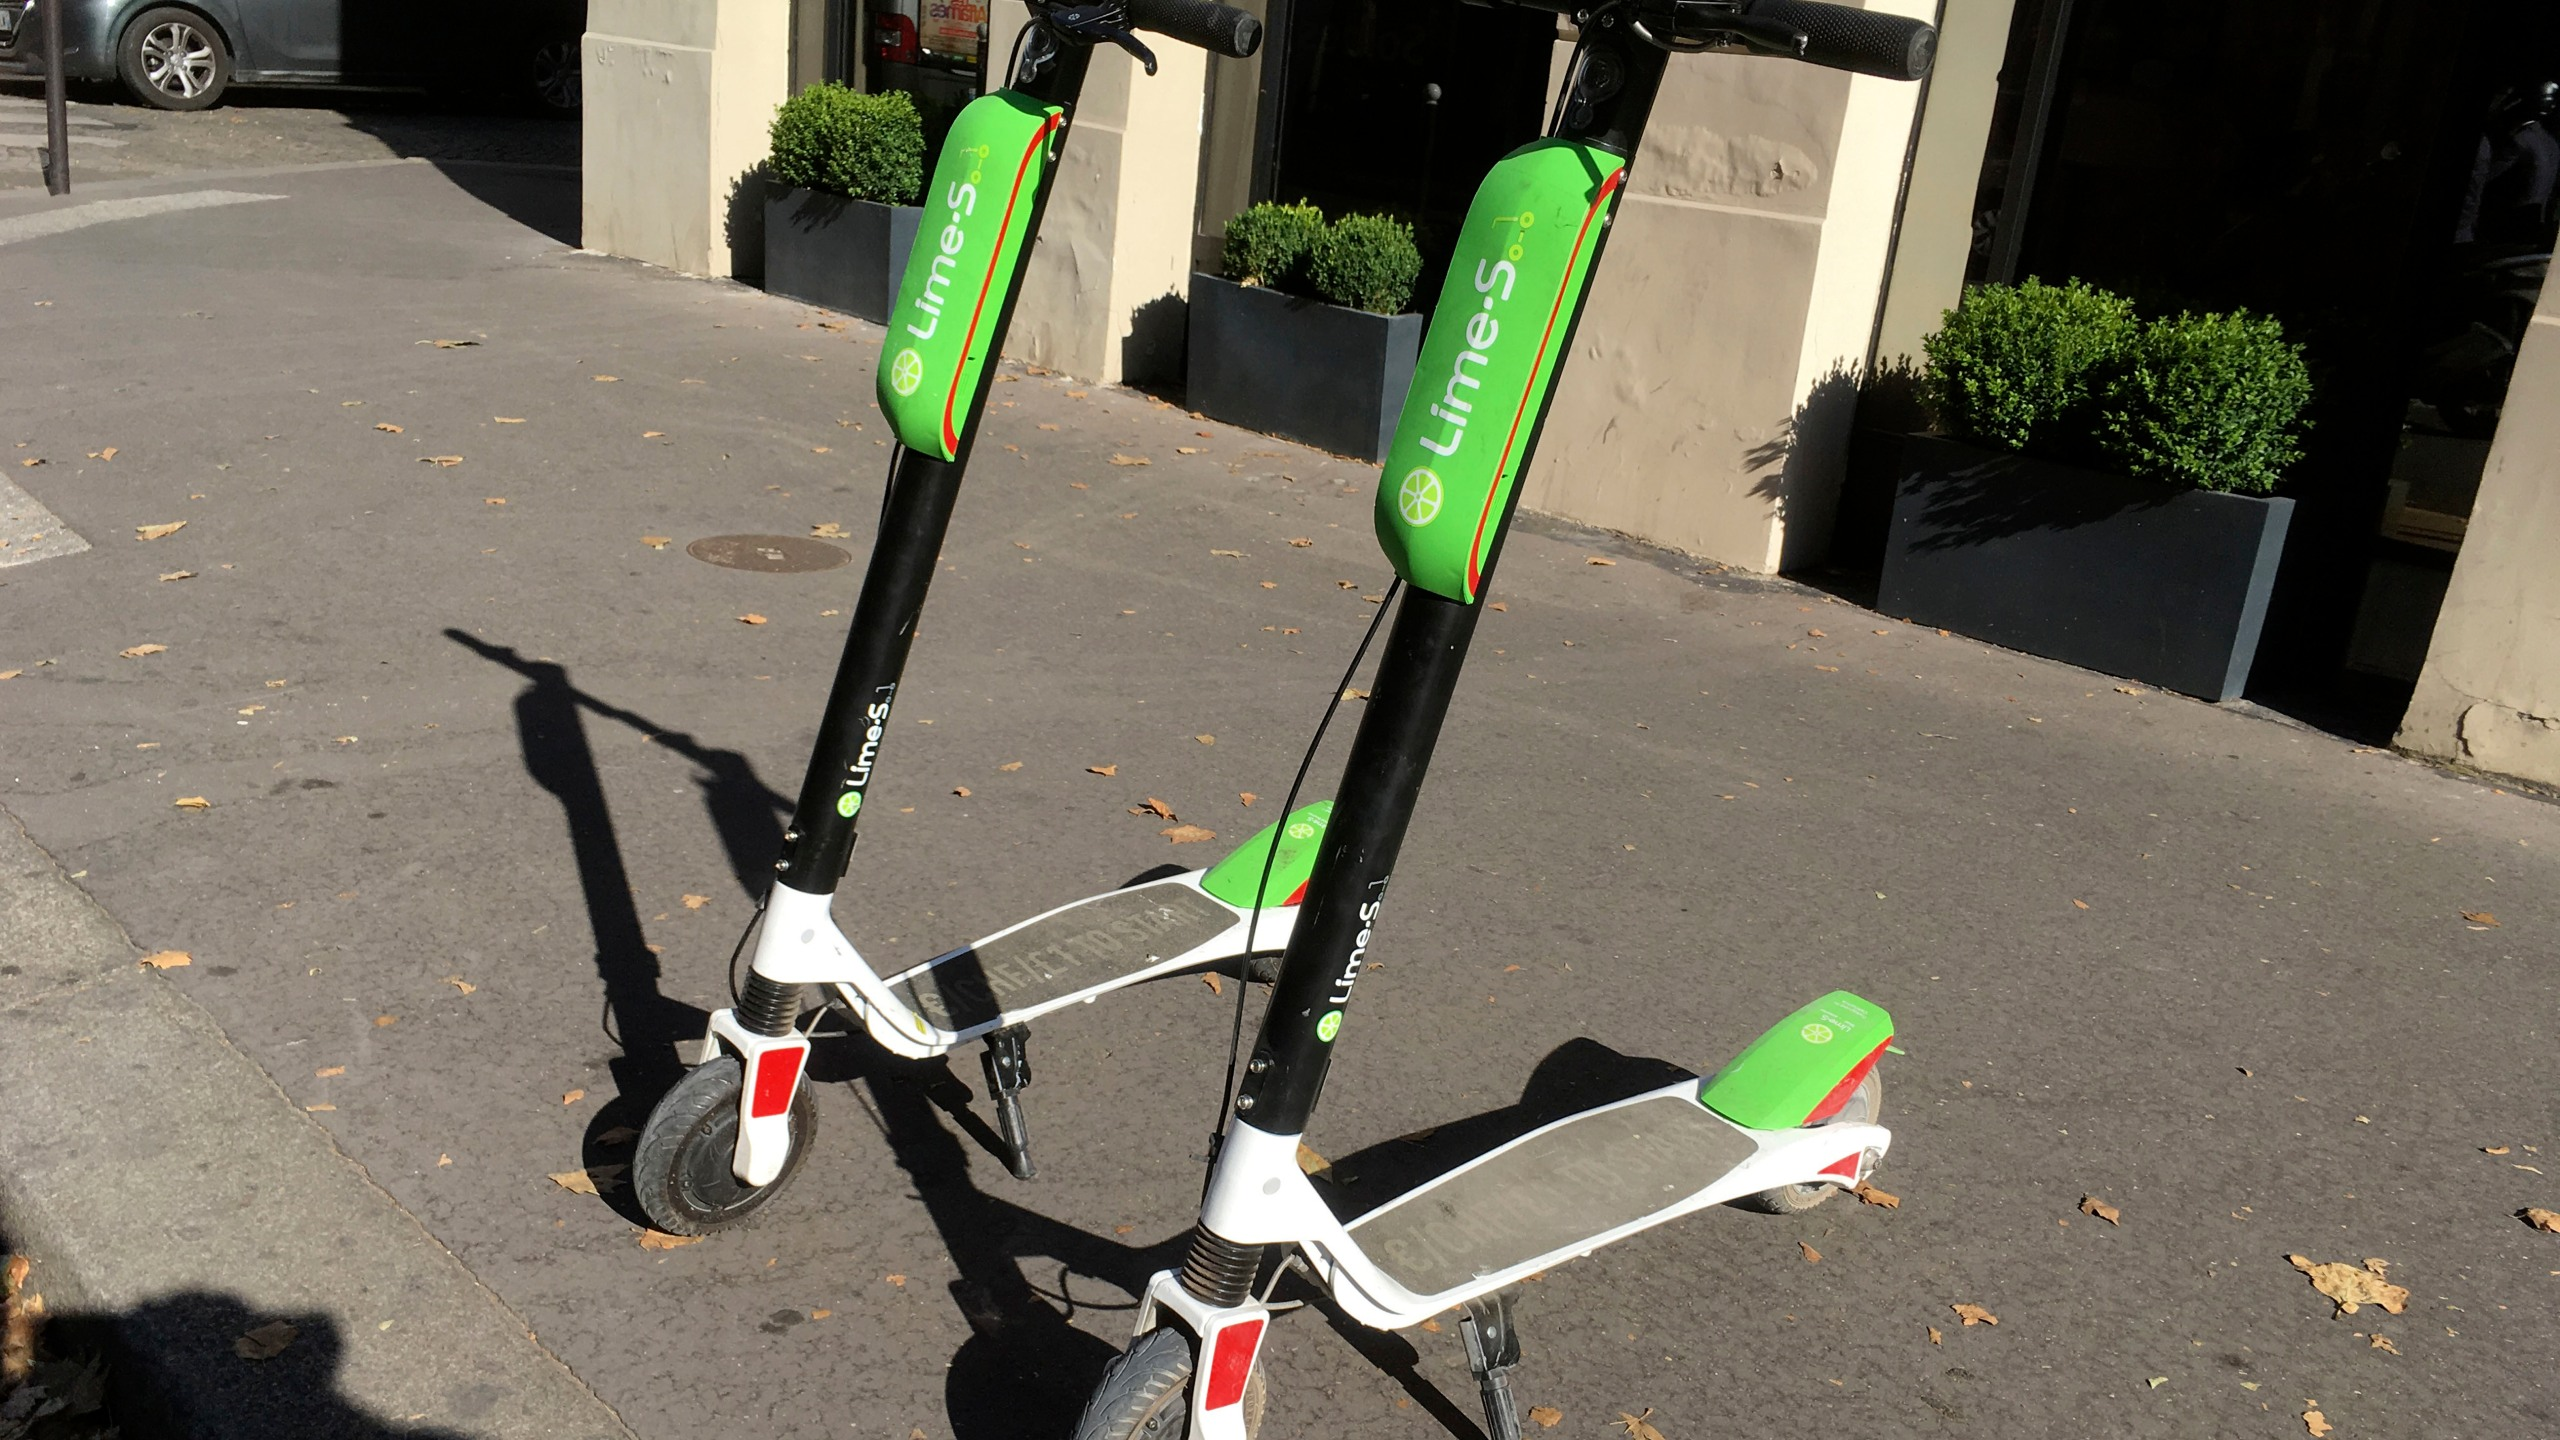 Uber_Lime_Scooters_45001-159532.jpg53337271